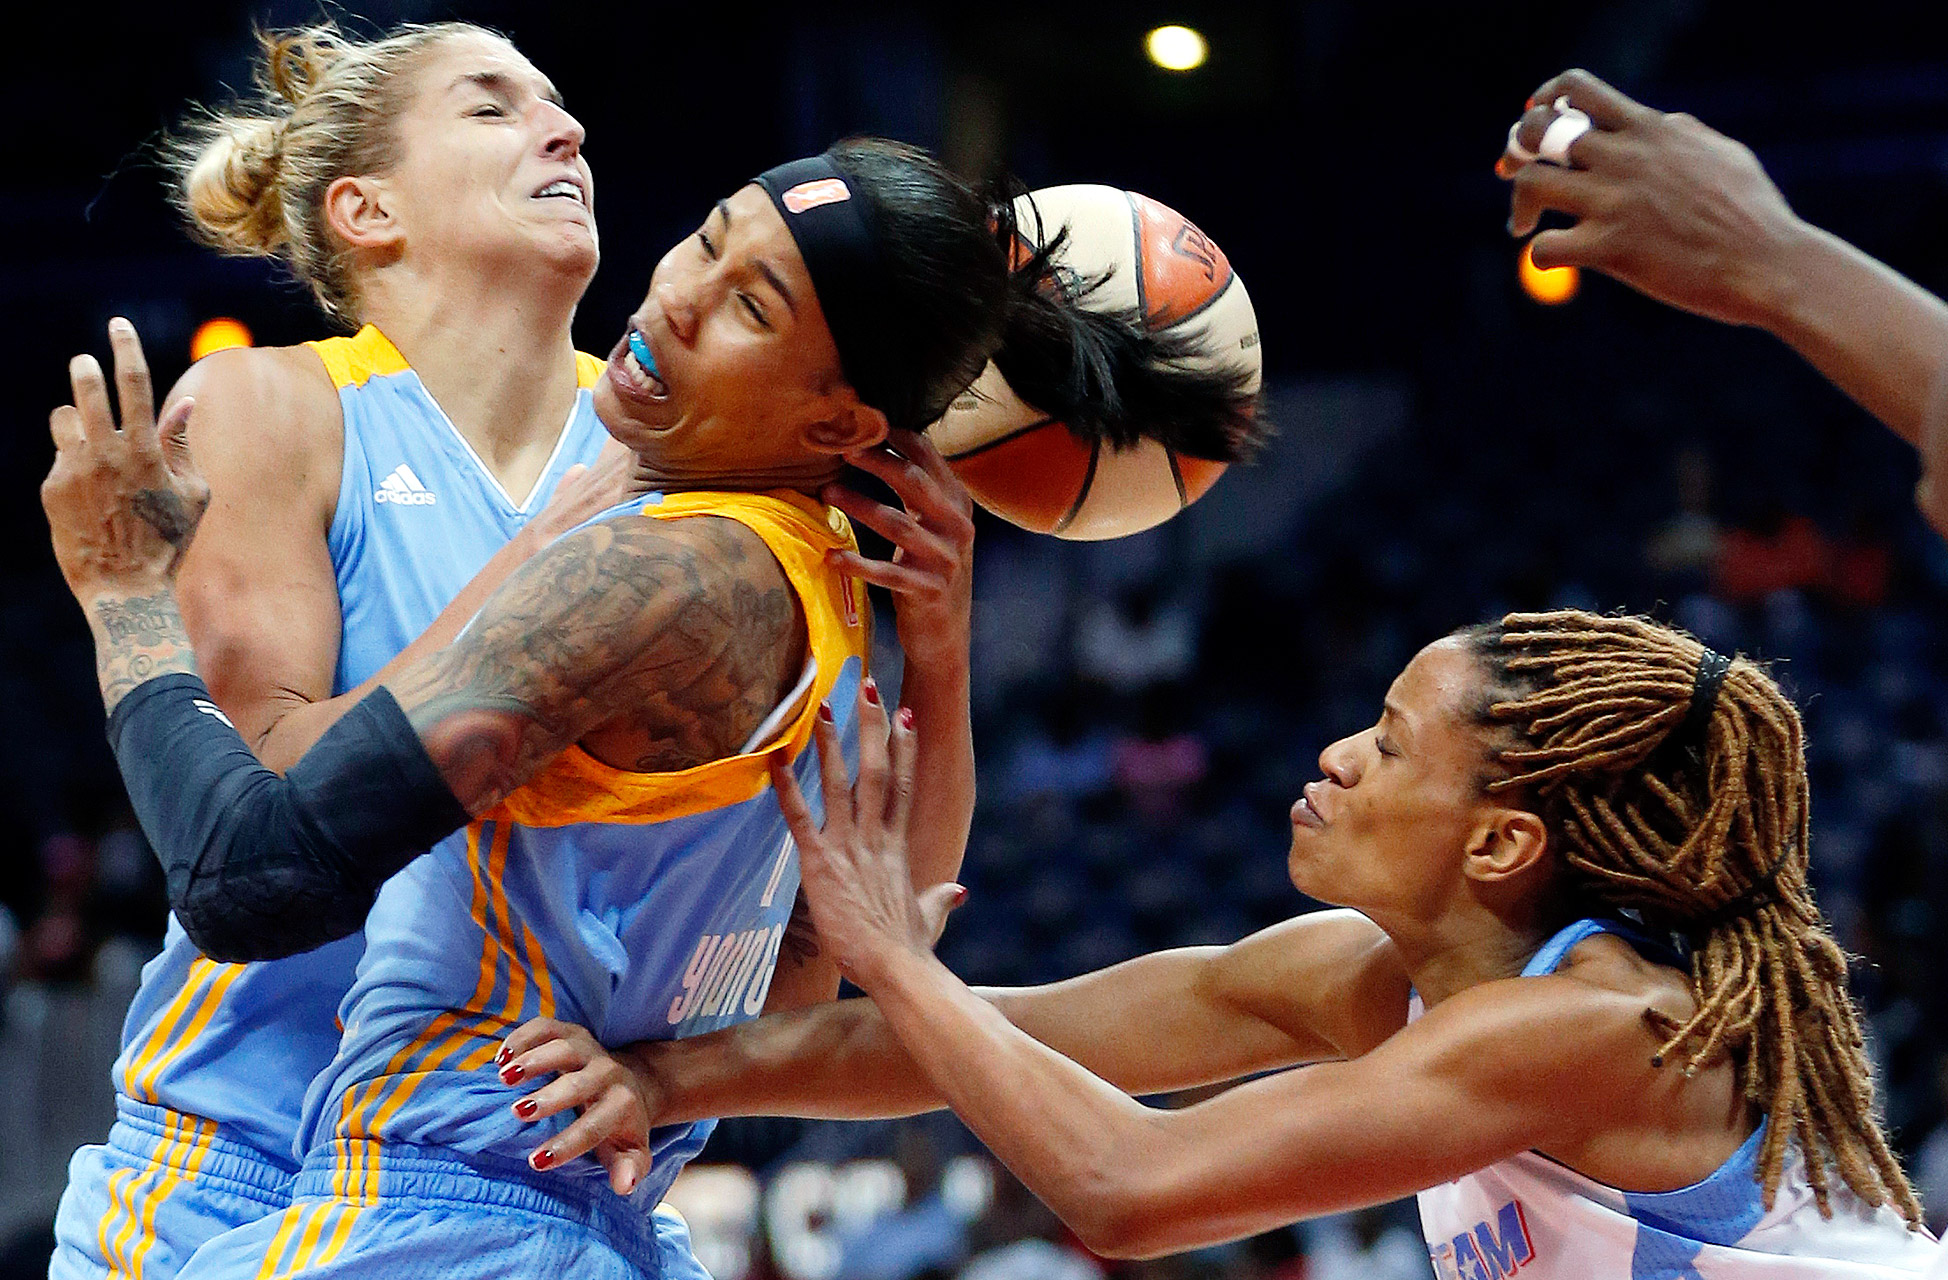 In a frantic fourth quarter, Elena Delle Donne scored 17 points and the Chicago Sky fought back from a 20-point deficit to beat the Atlanta Dream 81-80 and advance to the Eastern Conference finals.